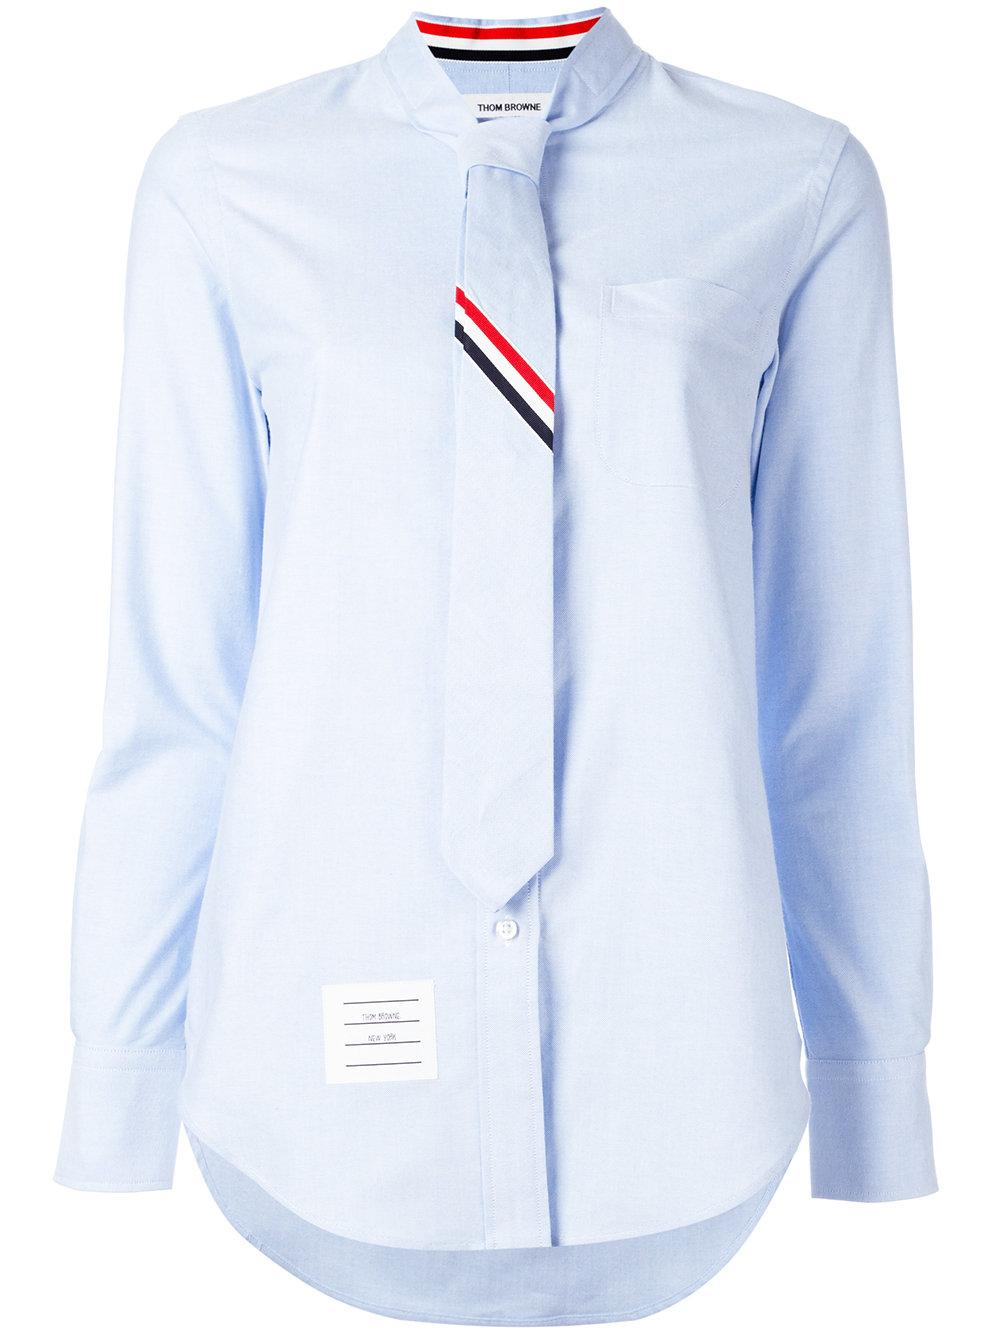 Thom browne tie shirt in blue lyst for Thom browne shirt sale